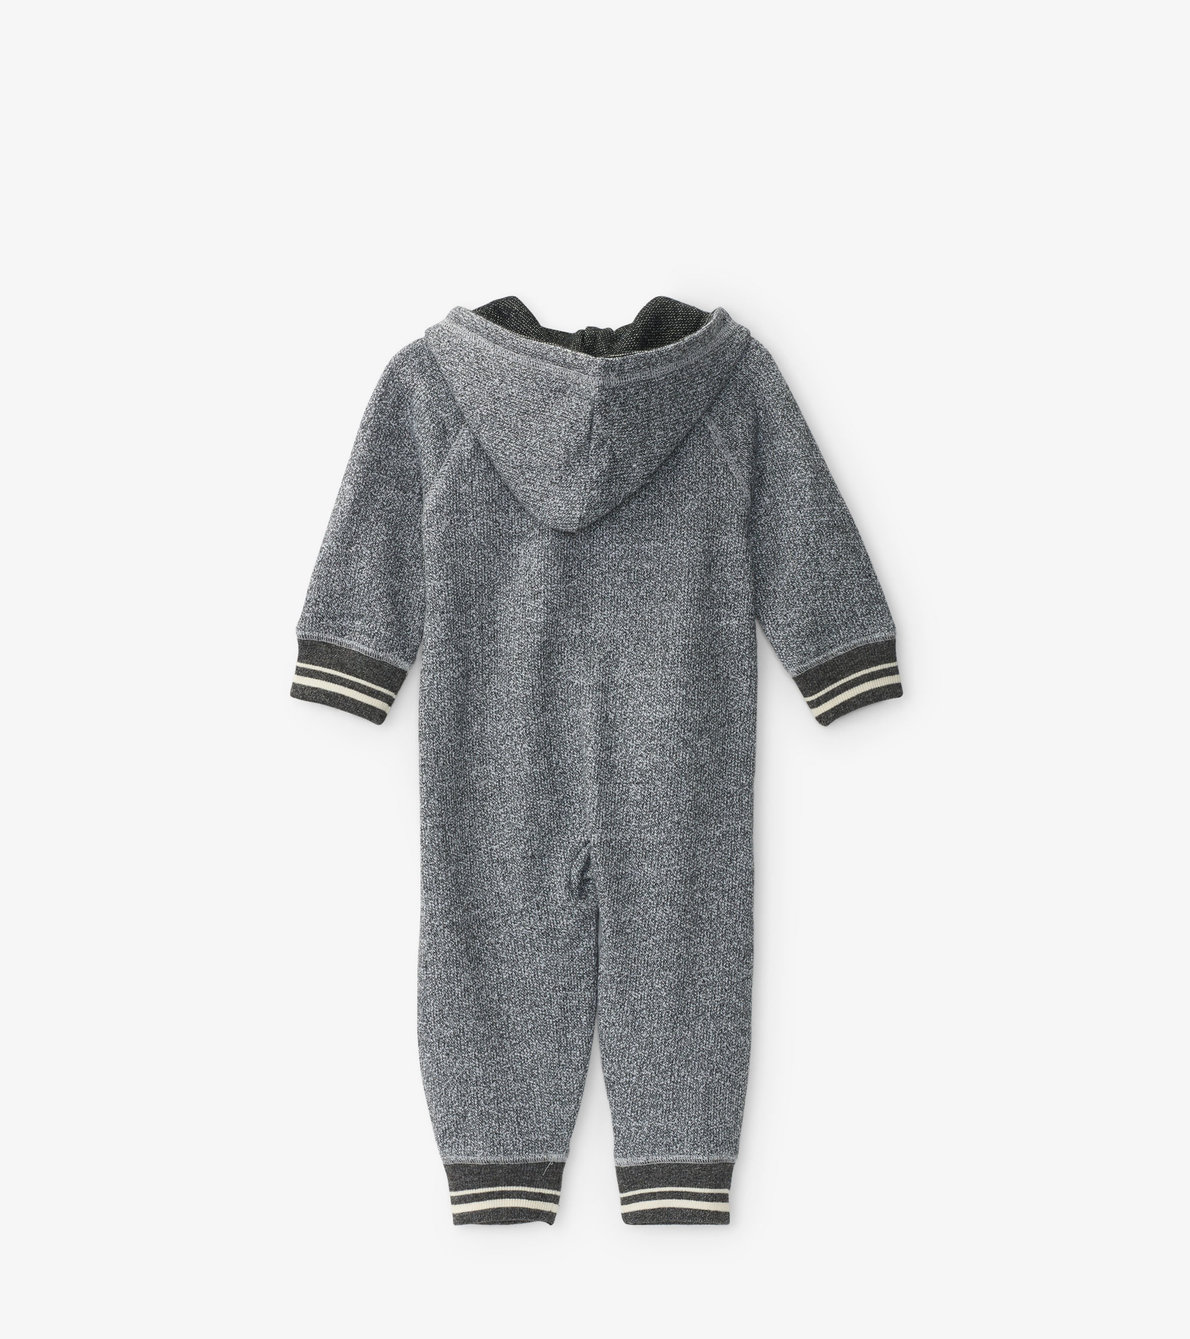 View larger image of Marled Grey Baby Heritage Full Zip Romper